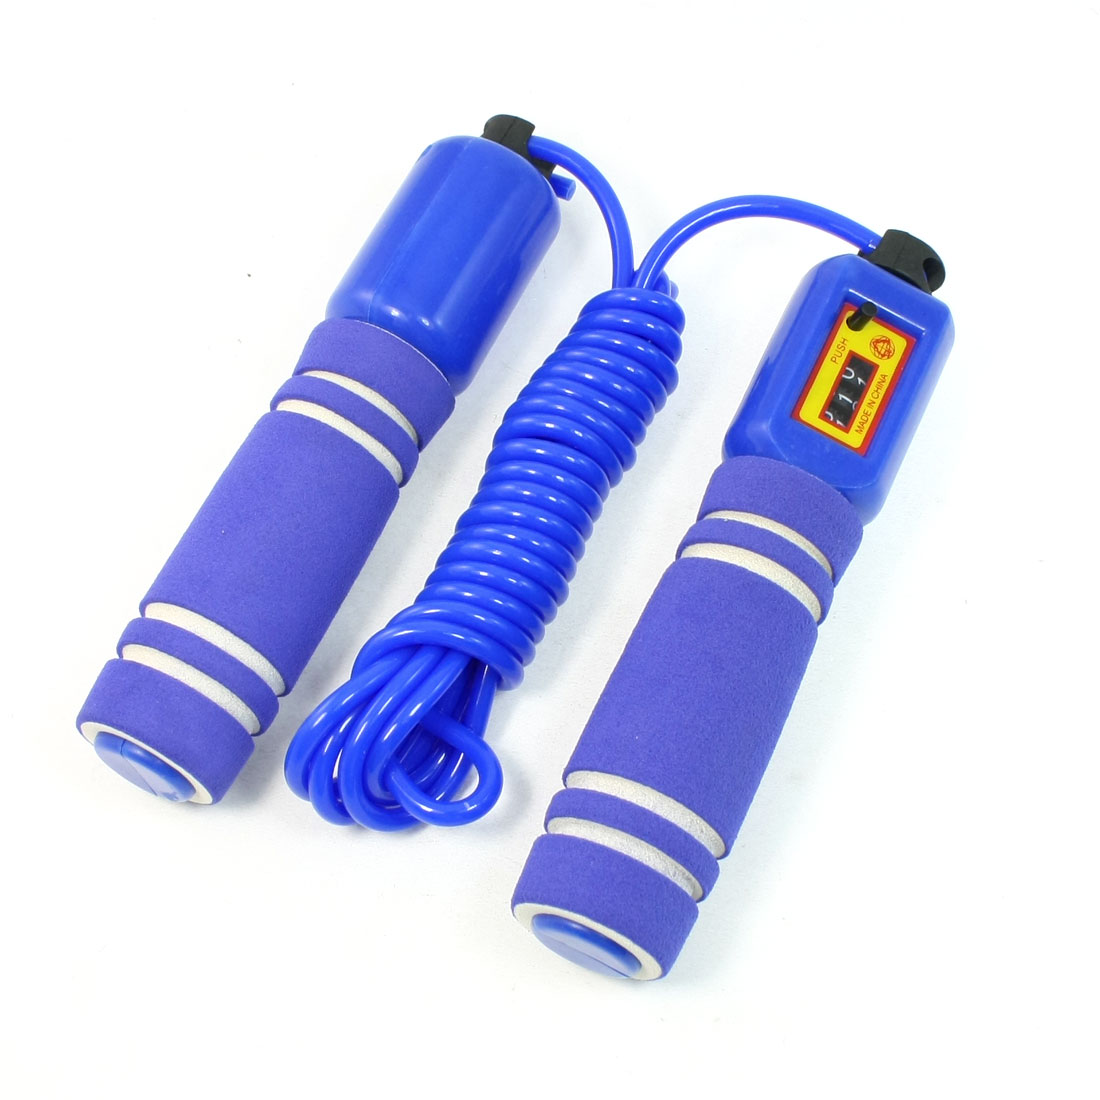 Exercise Training Foam Cover Anti Slip Grip Jump Rope Blue 2.8M Length